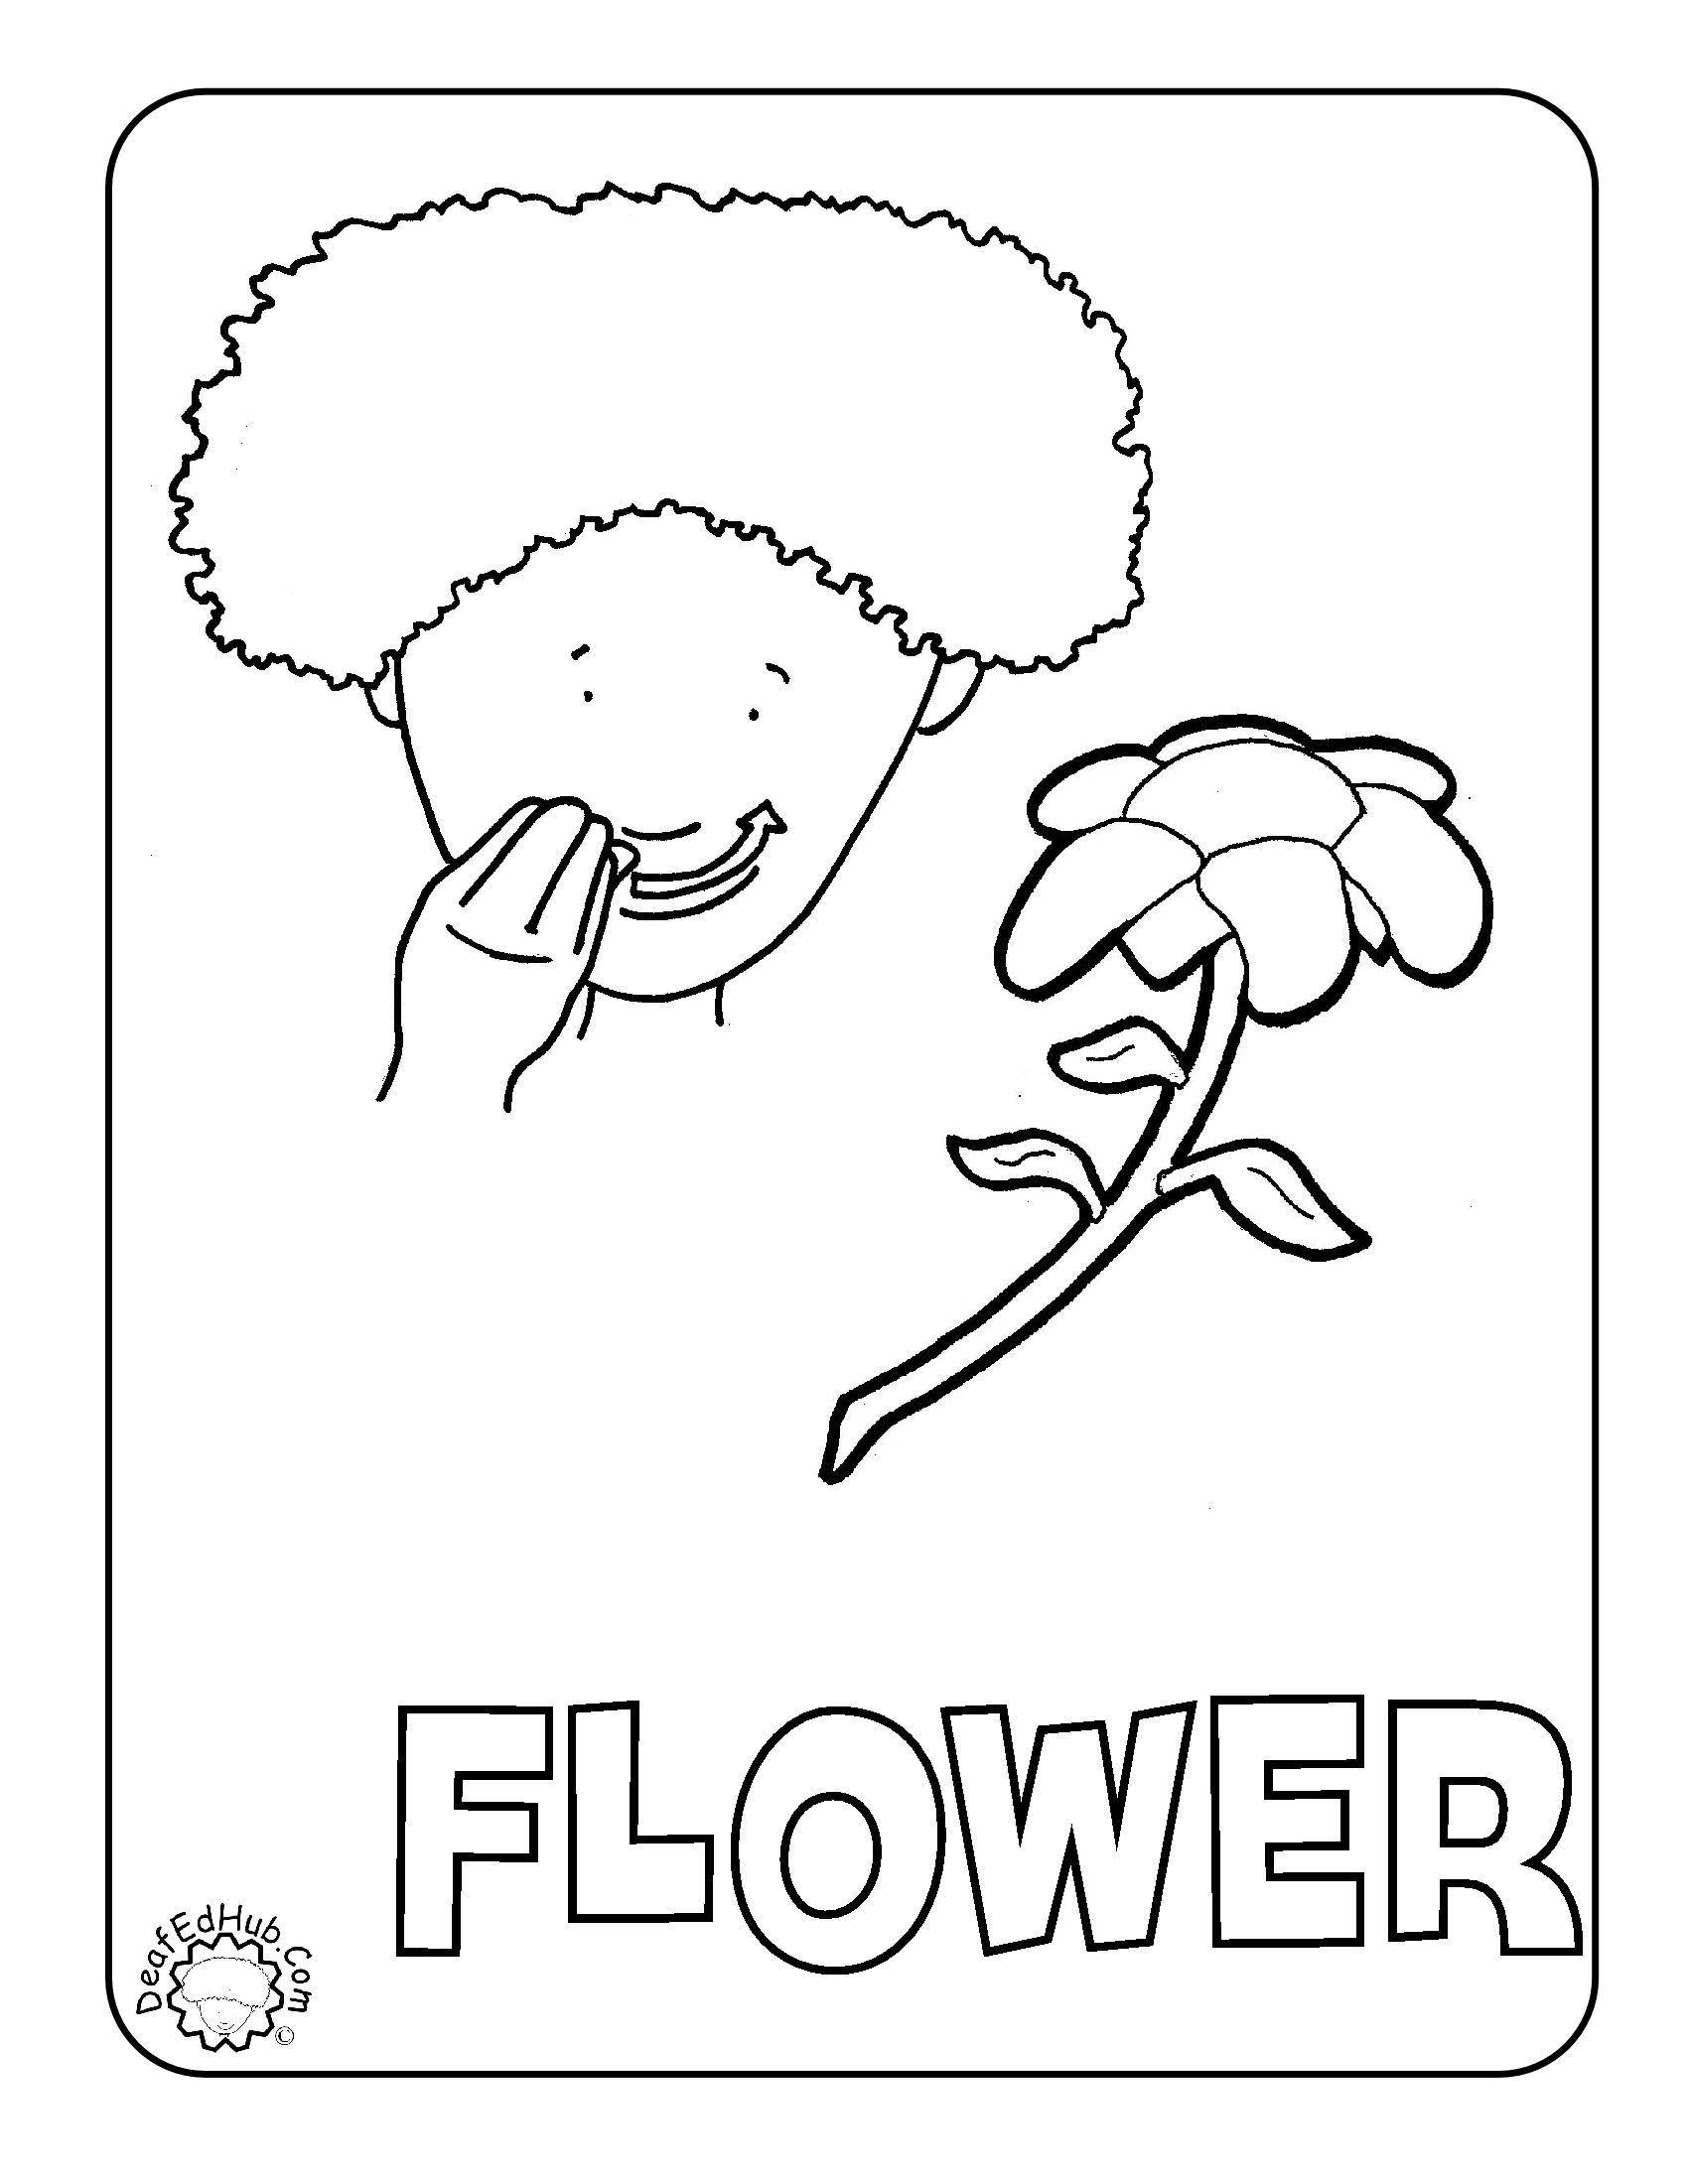 flower coloring ASL We have a few new coloring pages up